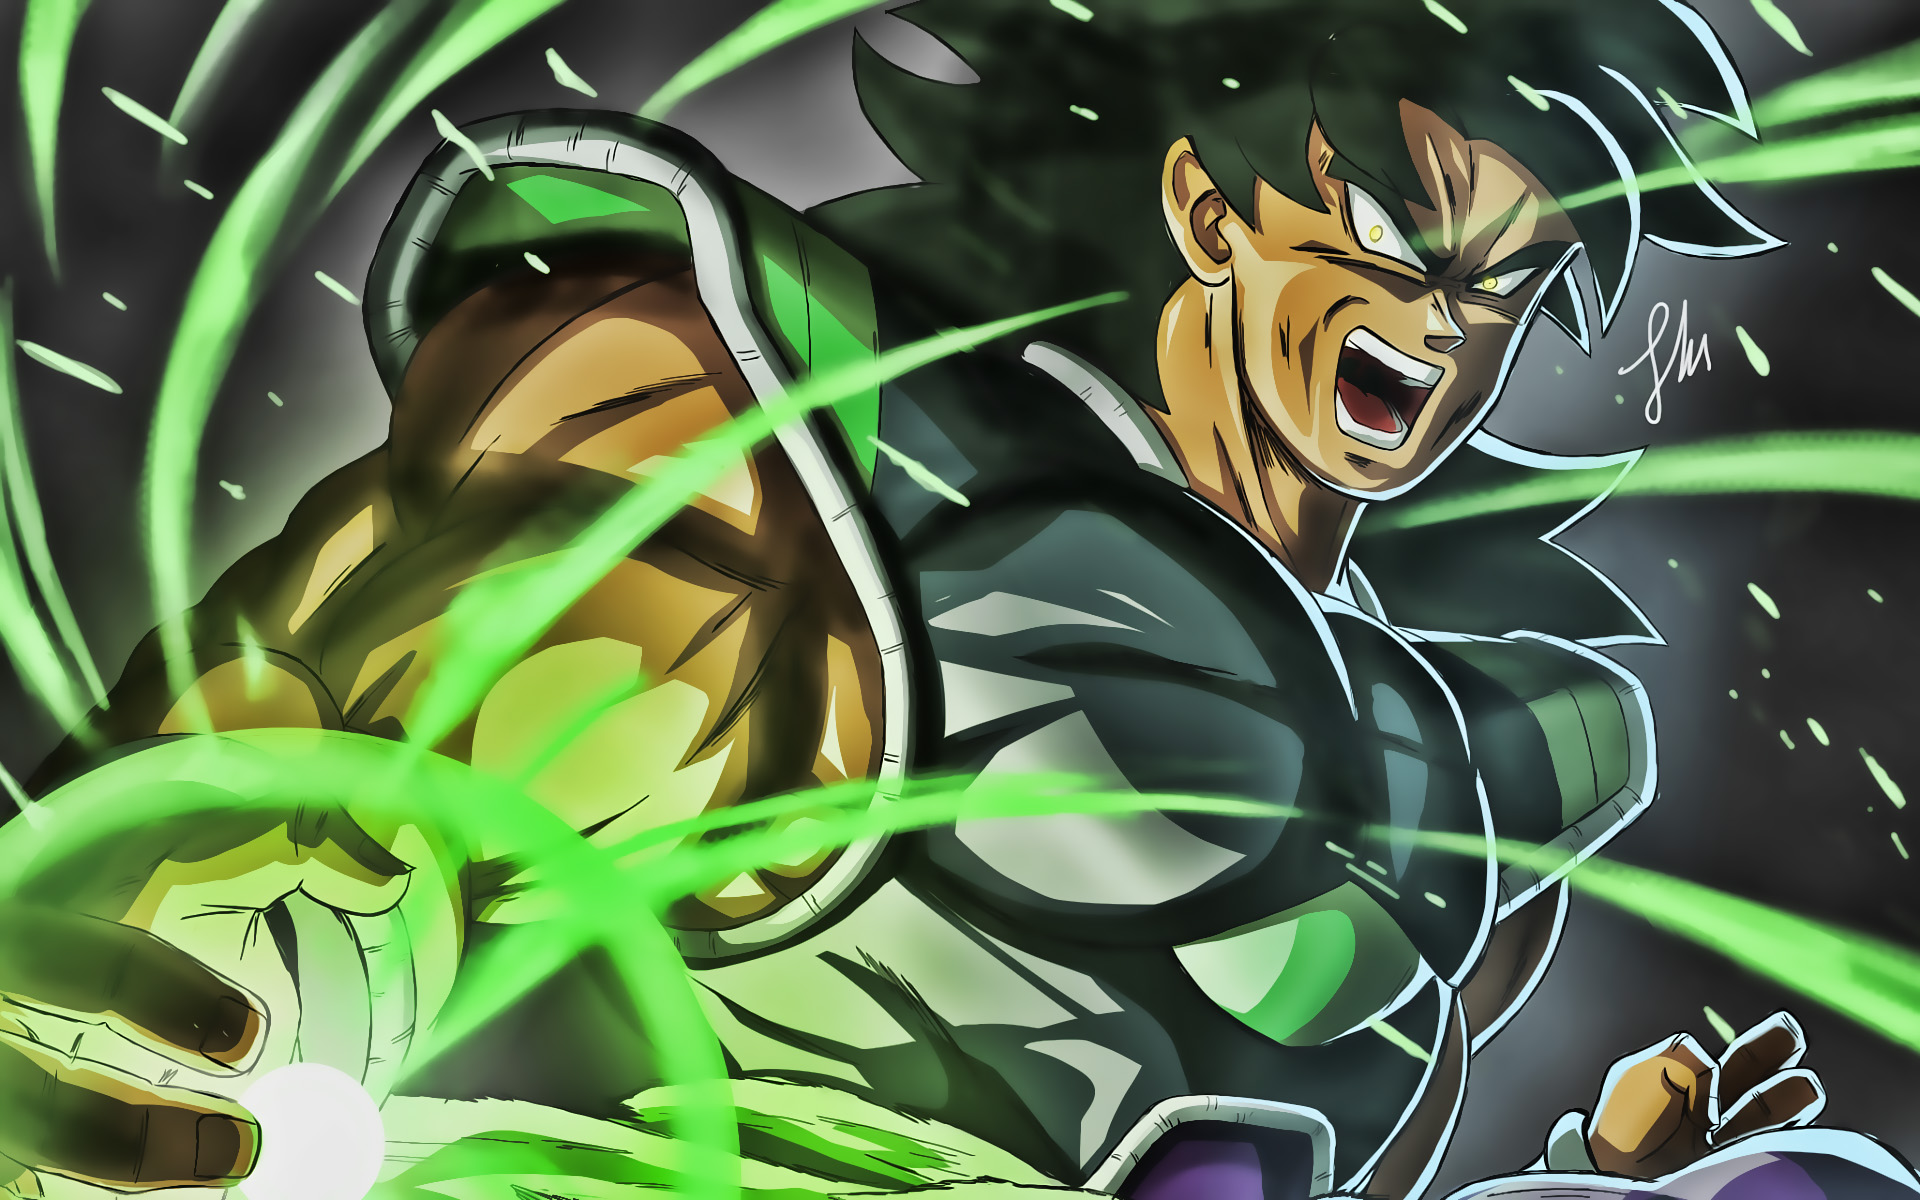 Anger Broly, close-up, DBS, battle, Dragon Ball Super, Broly, DBS characters, Dragon Ball